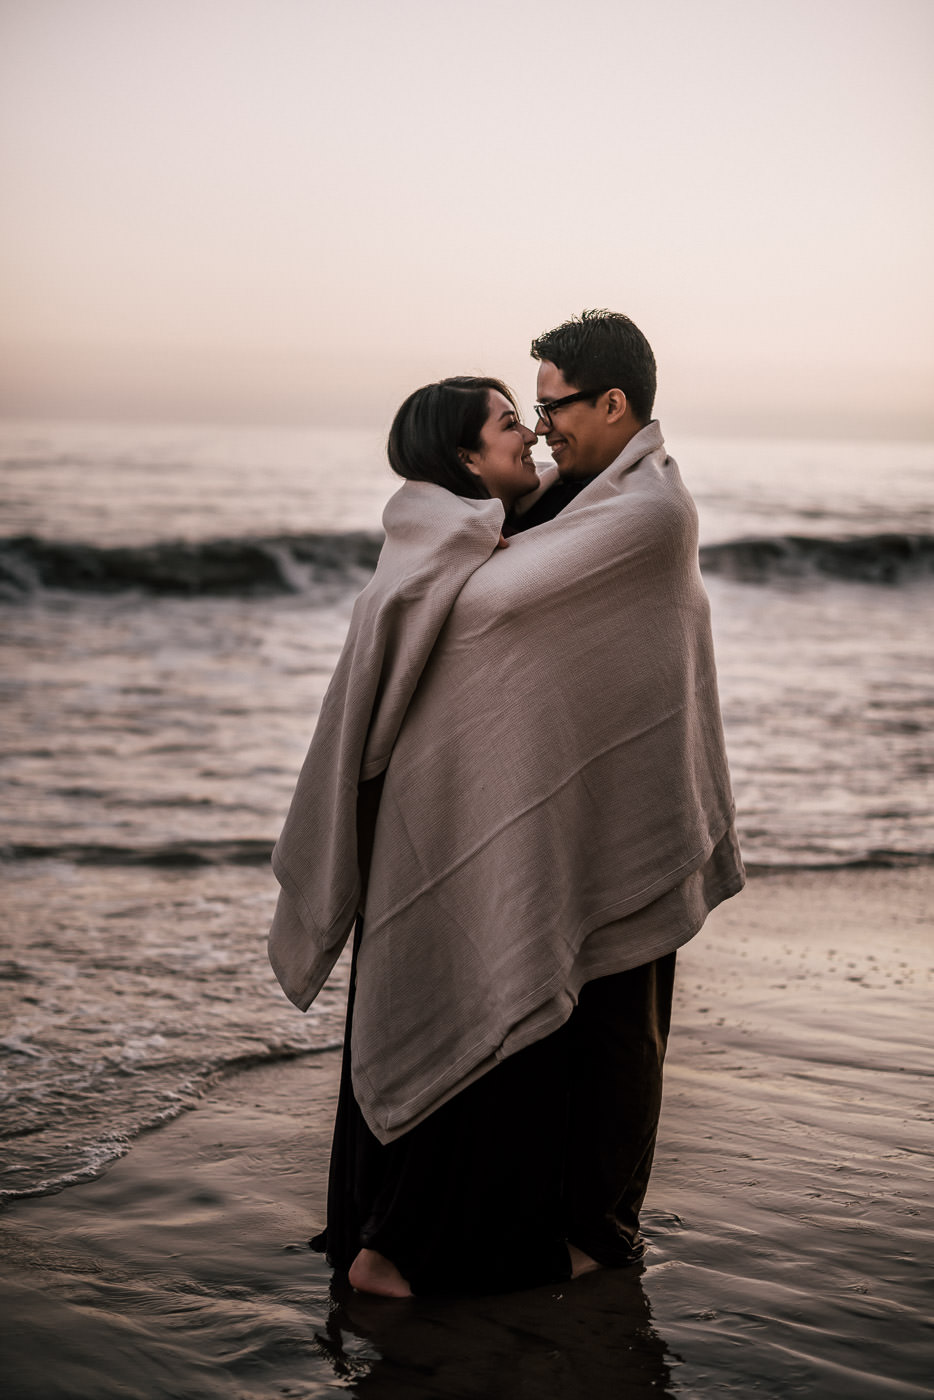 The cold winter weather couldnt deter this romantic couple from having their engagement session on the wet sand of El Matador State Beach.